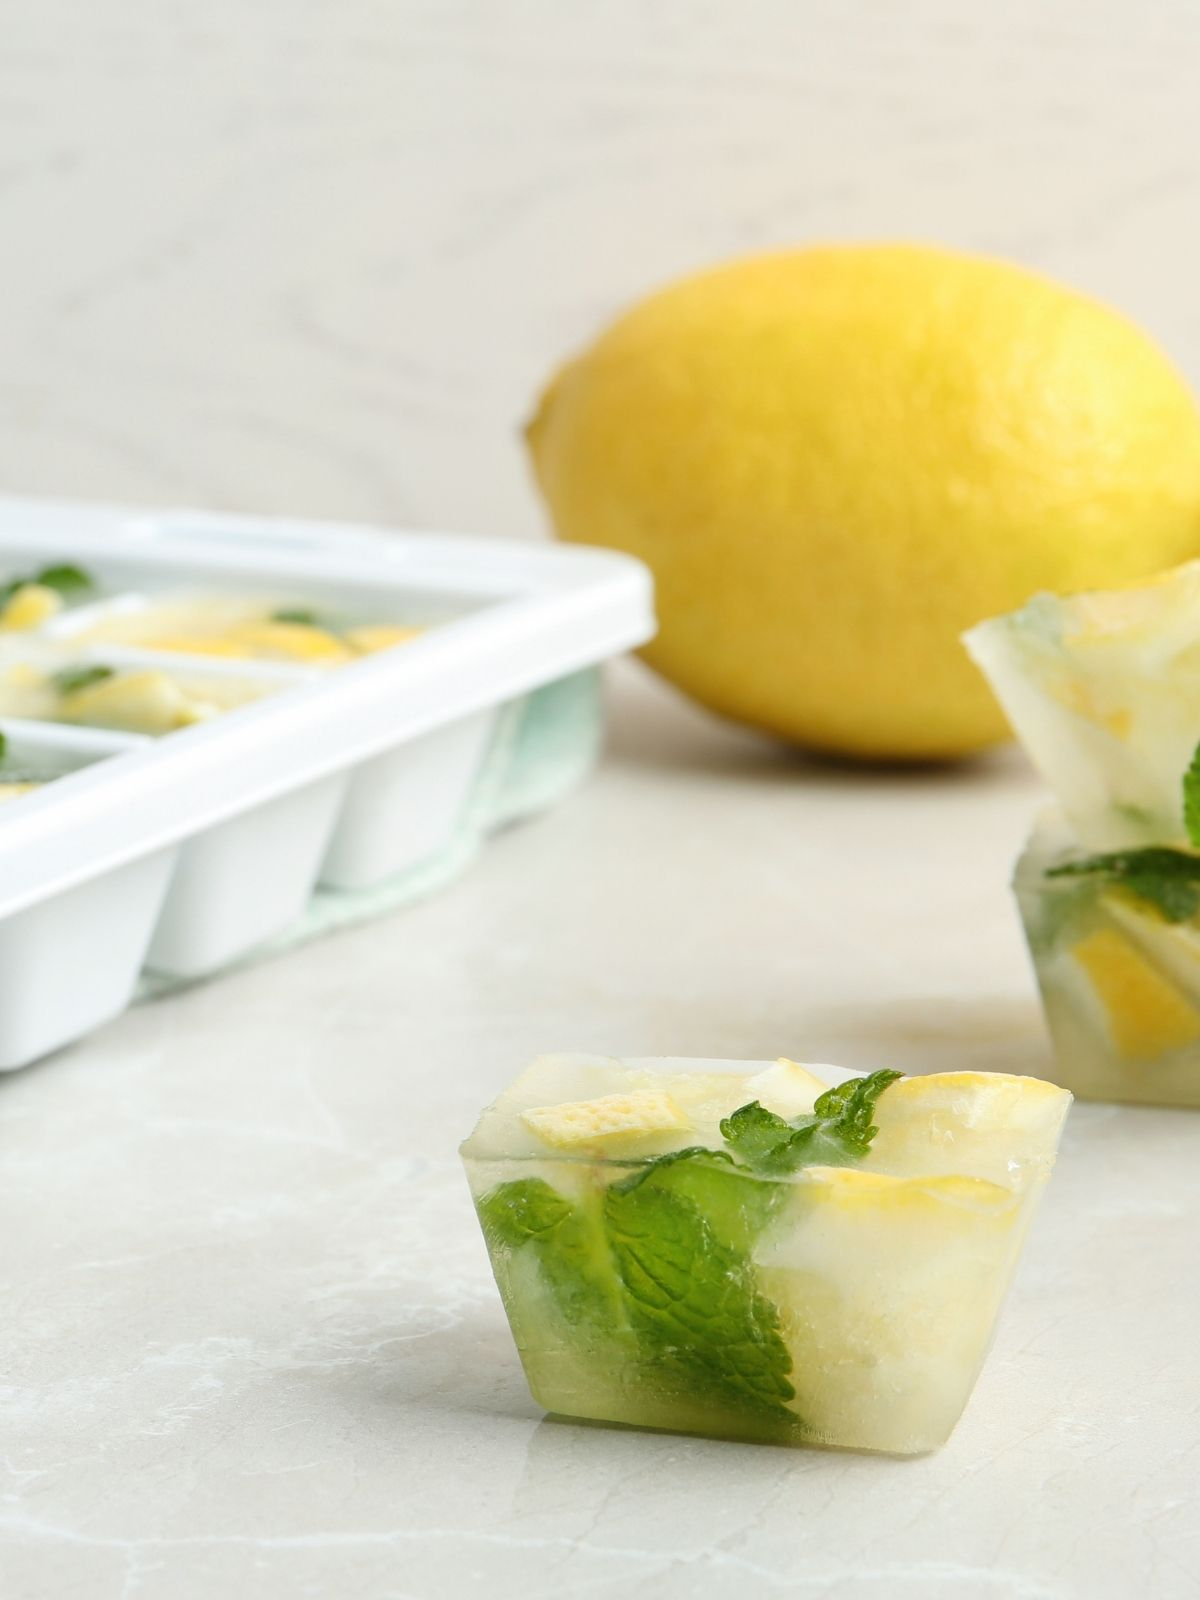 ice cubes with lemon slices.